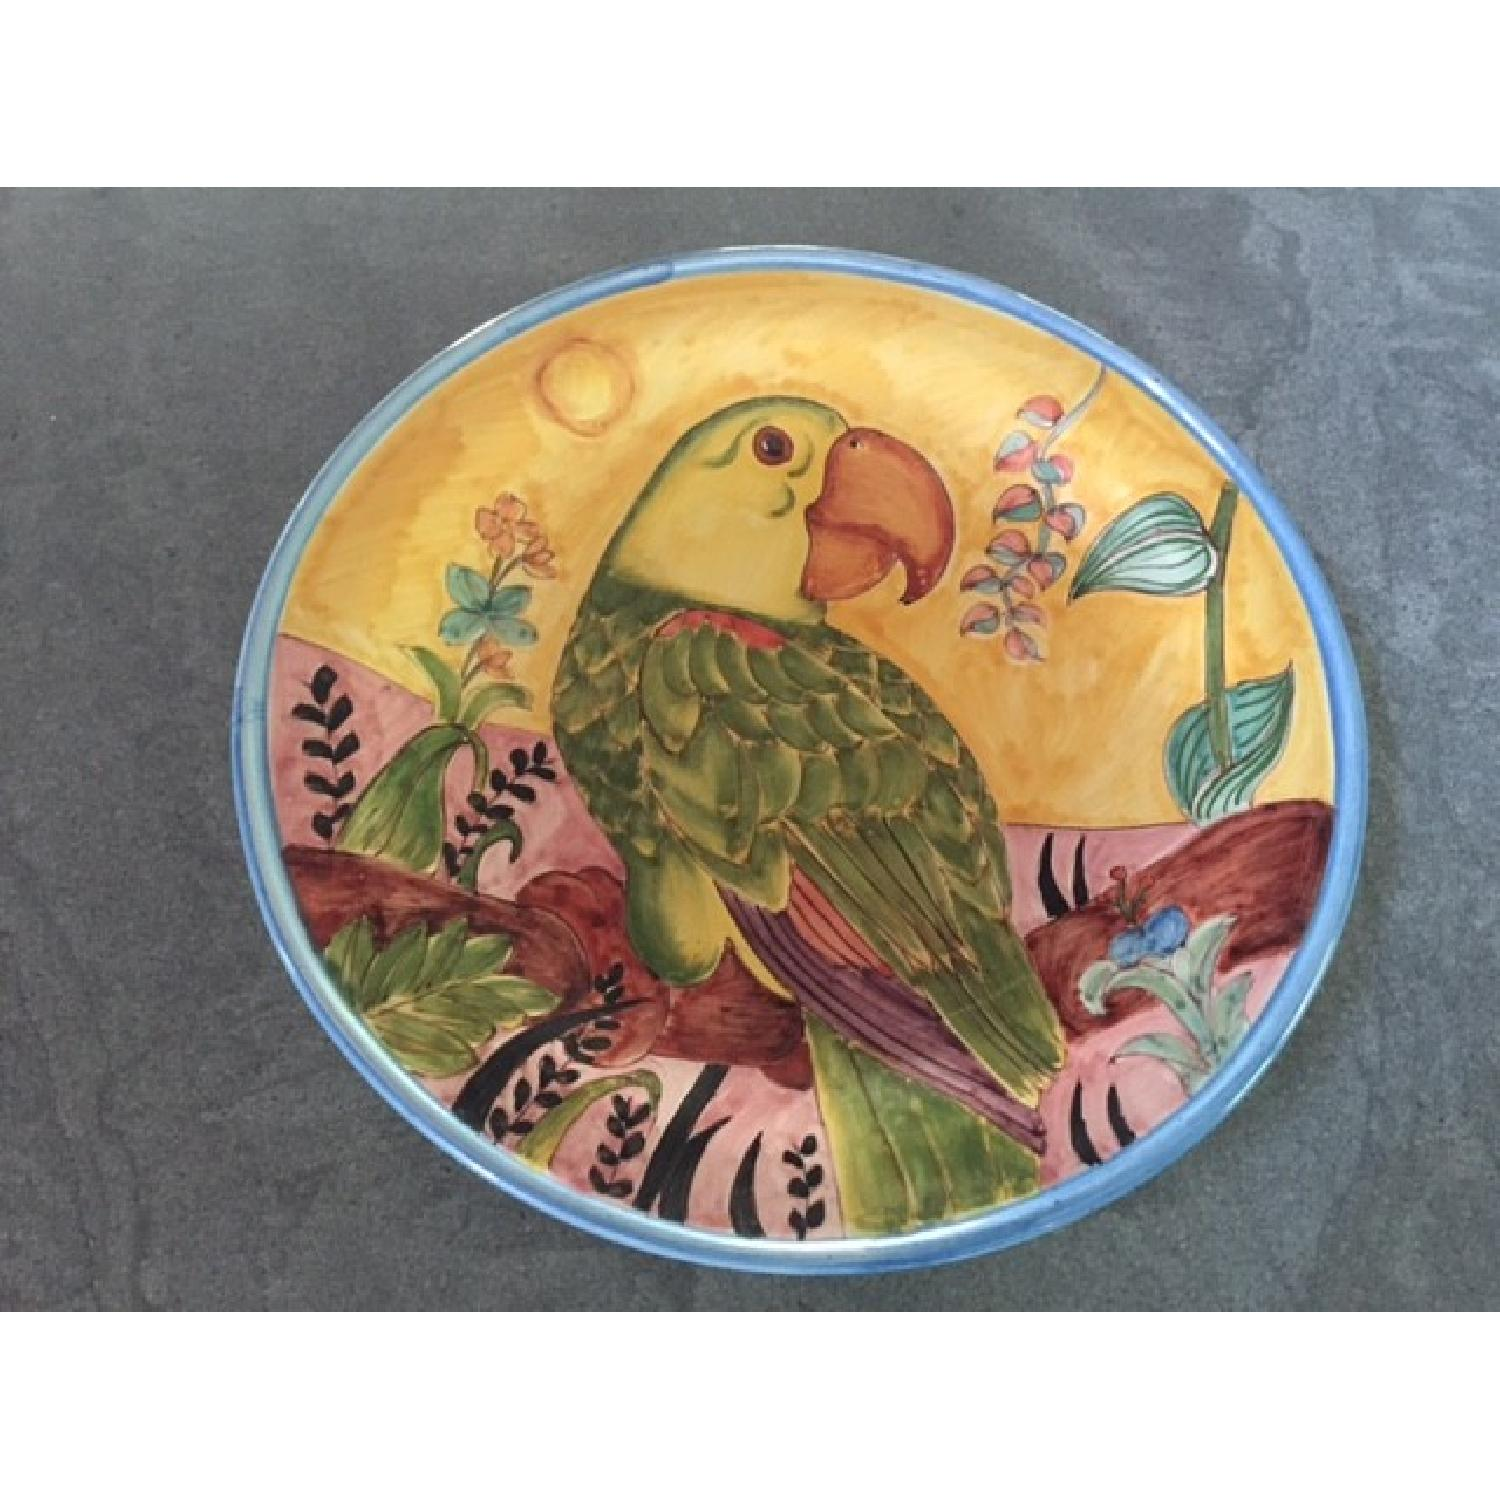 Country Floors Italian Hand Painted Decorative Platter w/ Parrot Print - image-2